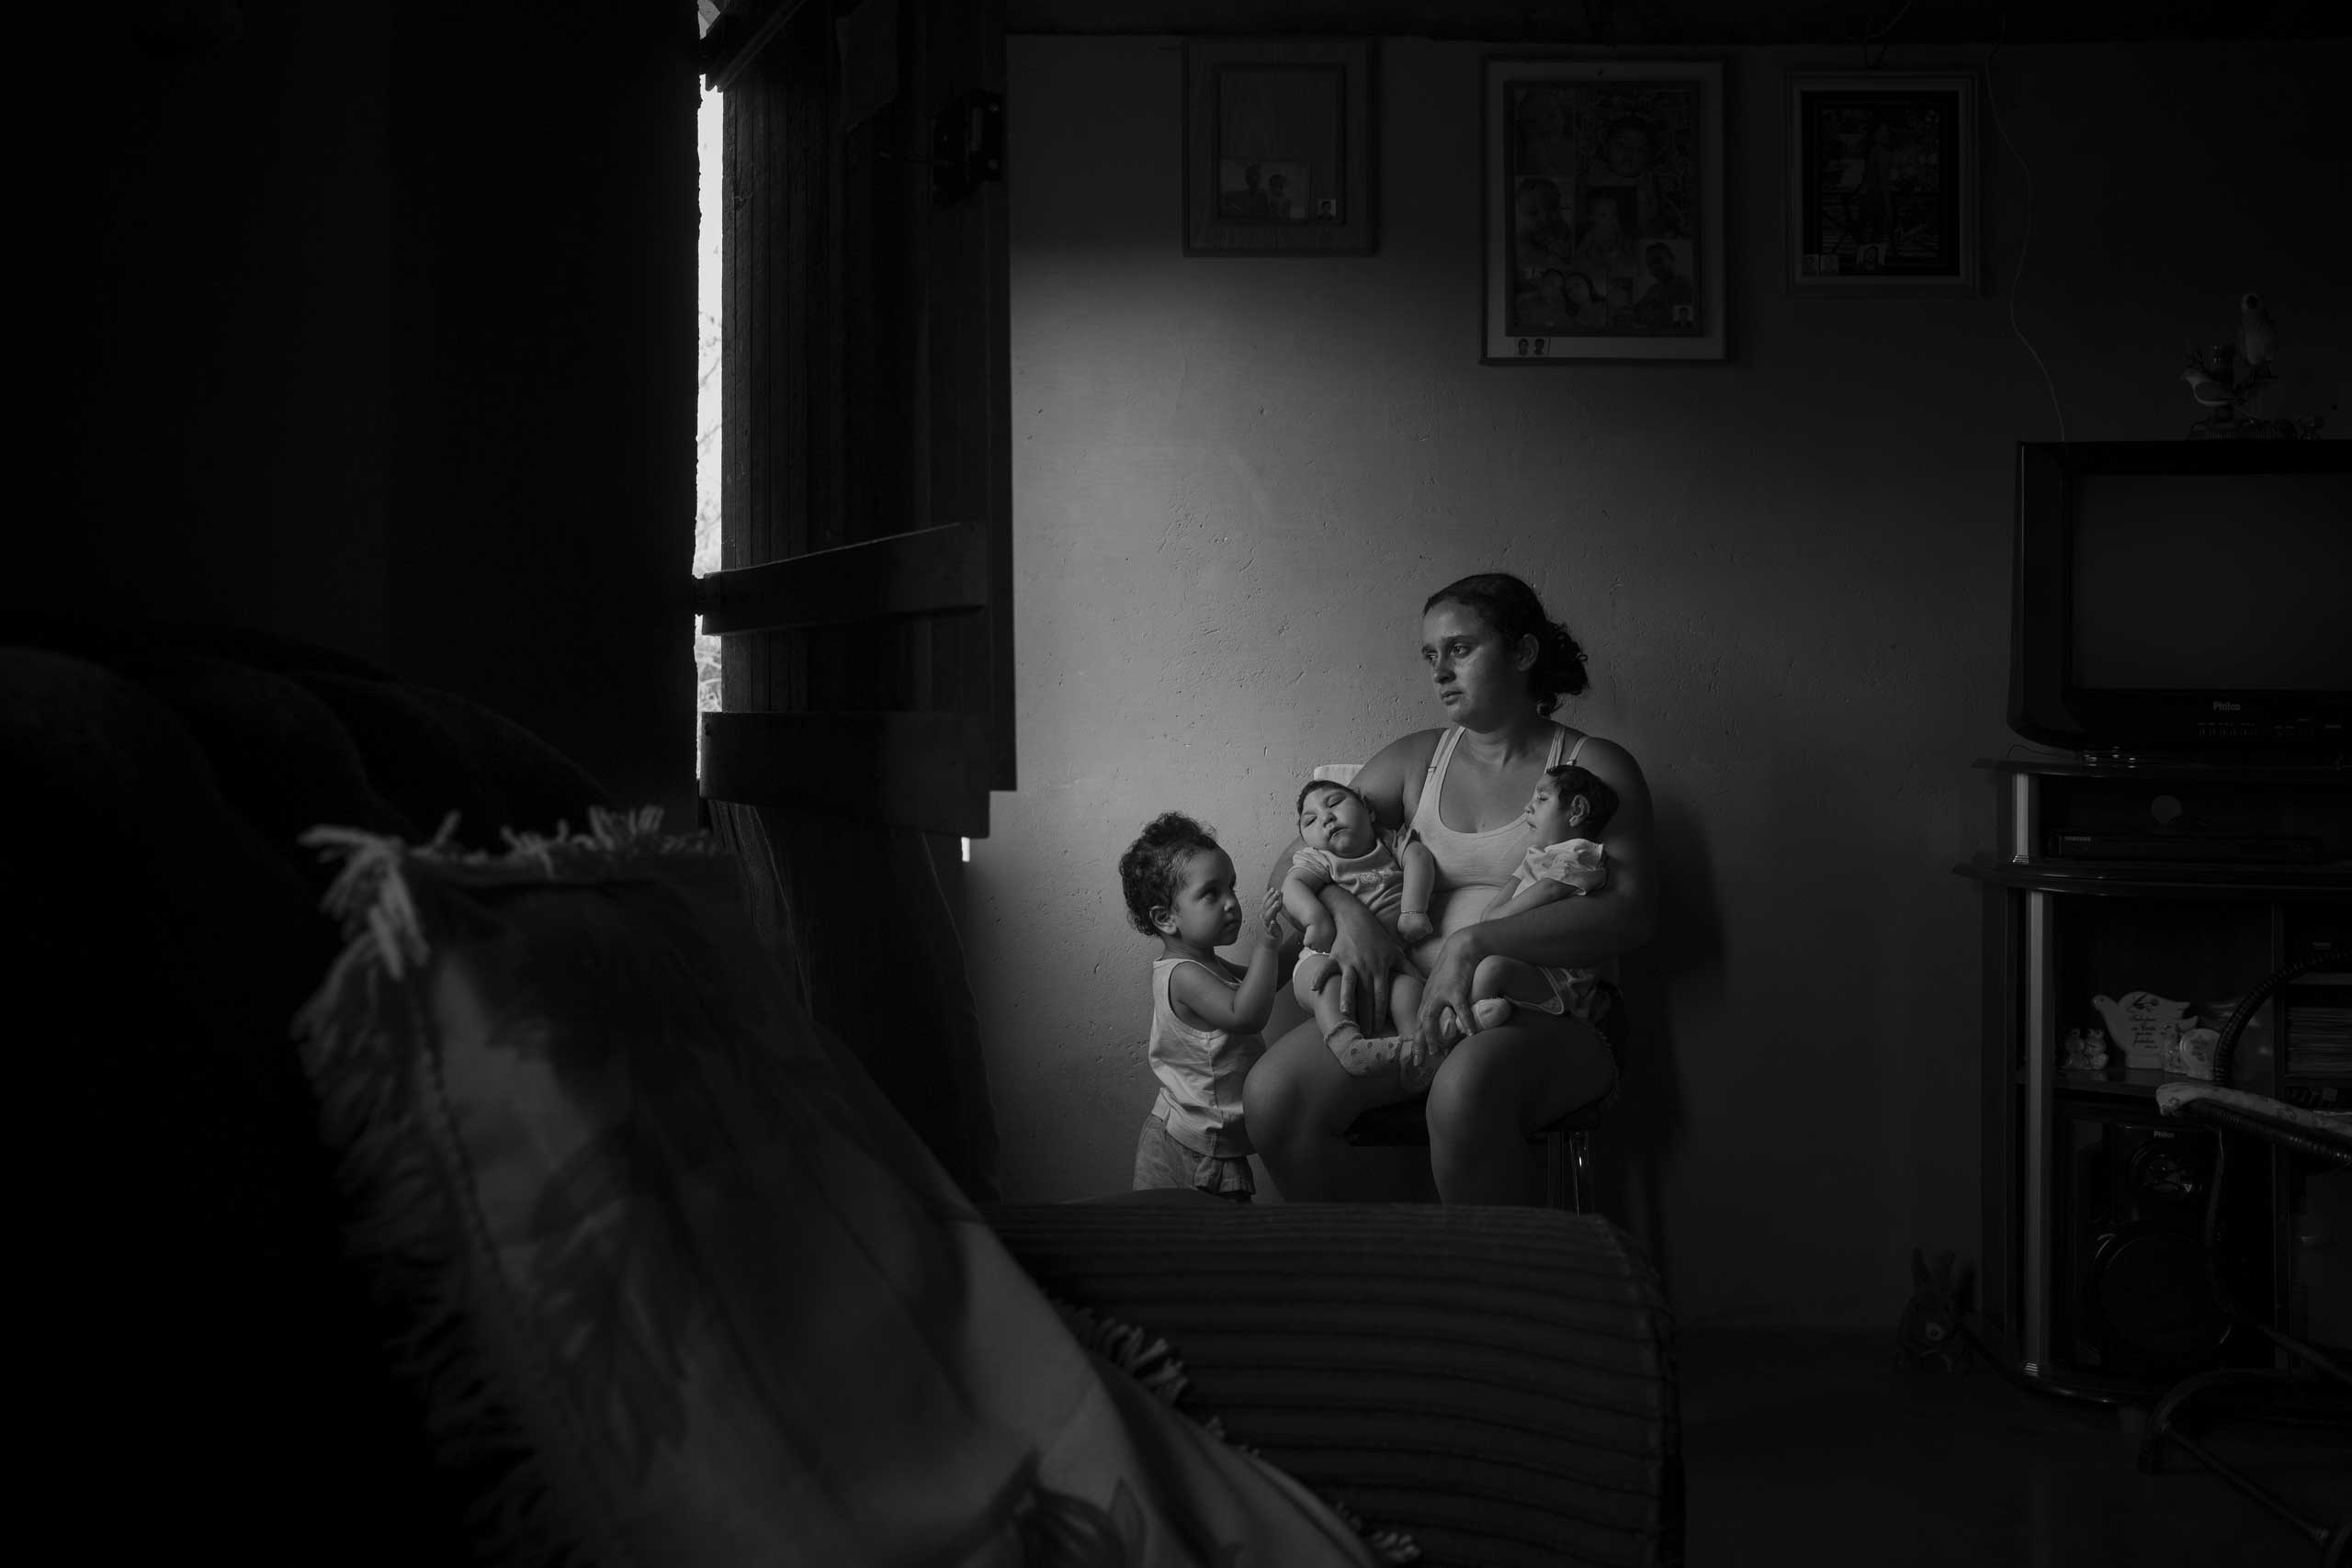 Marcela, 2, observes her sisters in her mother's lap at the family's home in the rural area of Areia. Twin sisters Heloisa (left) and Heloá (right) were born seven months prior with microcephaly caused by the Zika virus.